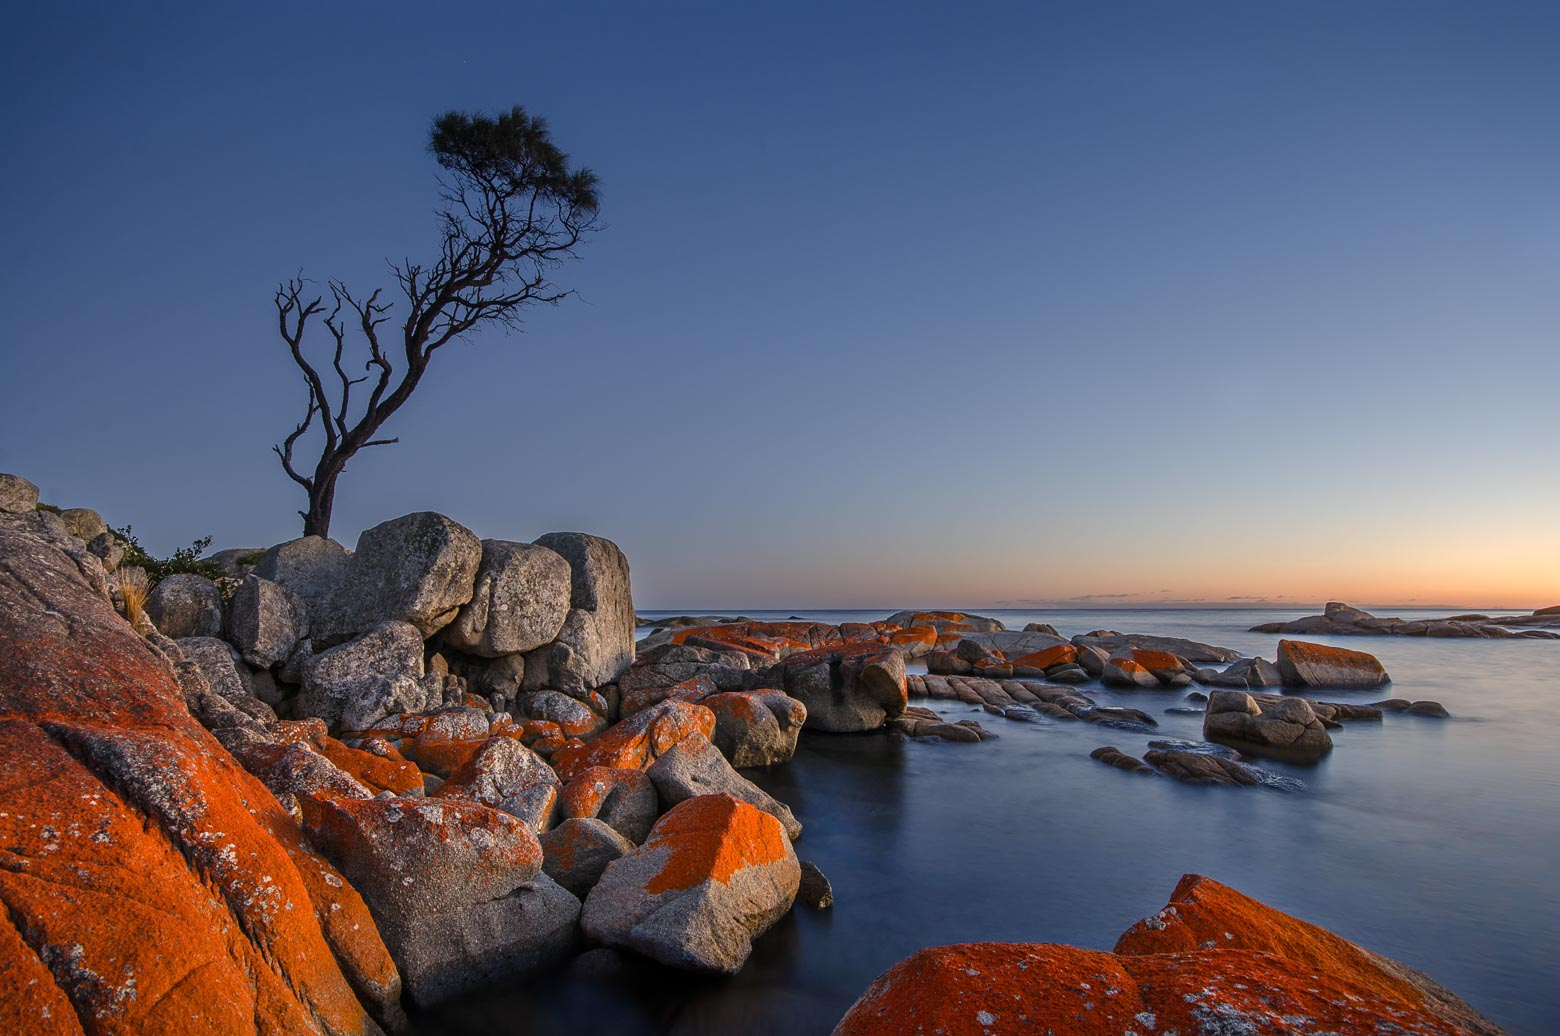 'Lone Tree' at the Bay of Fires' - One of the best Tasmania highlights